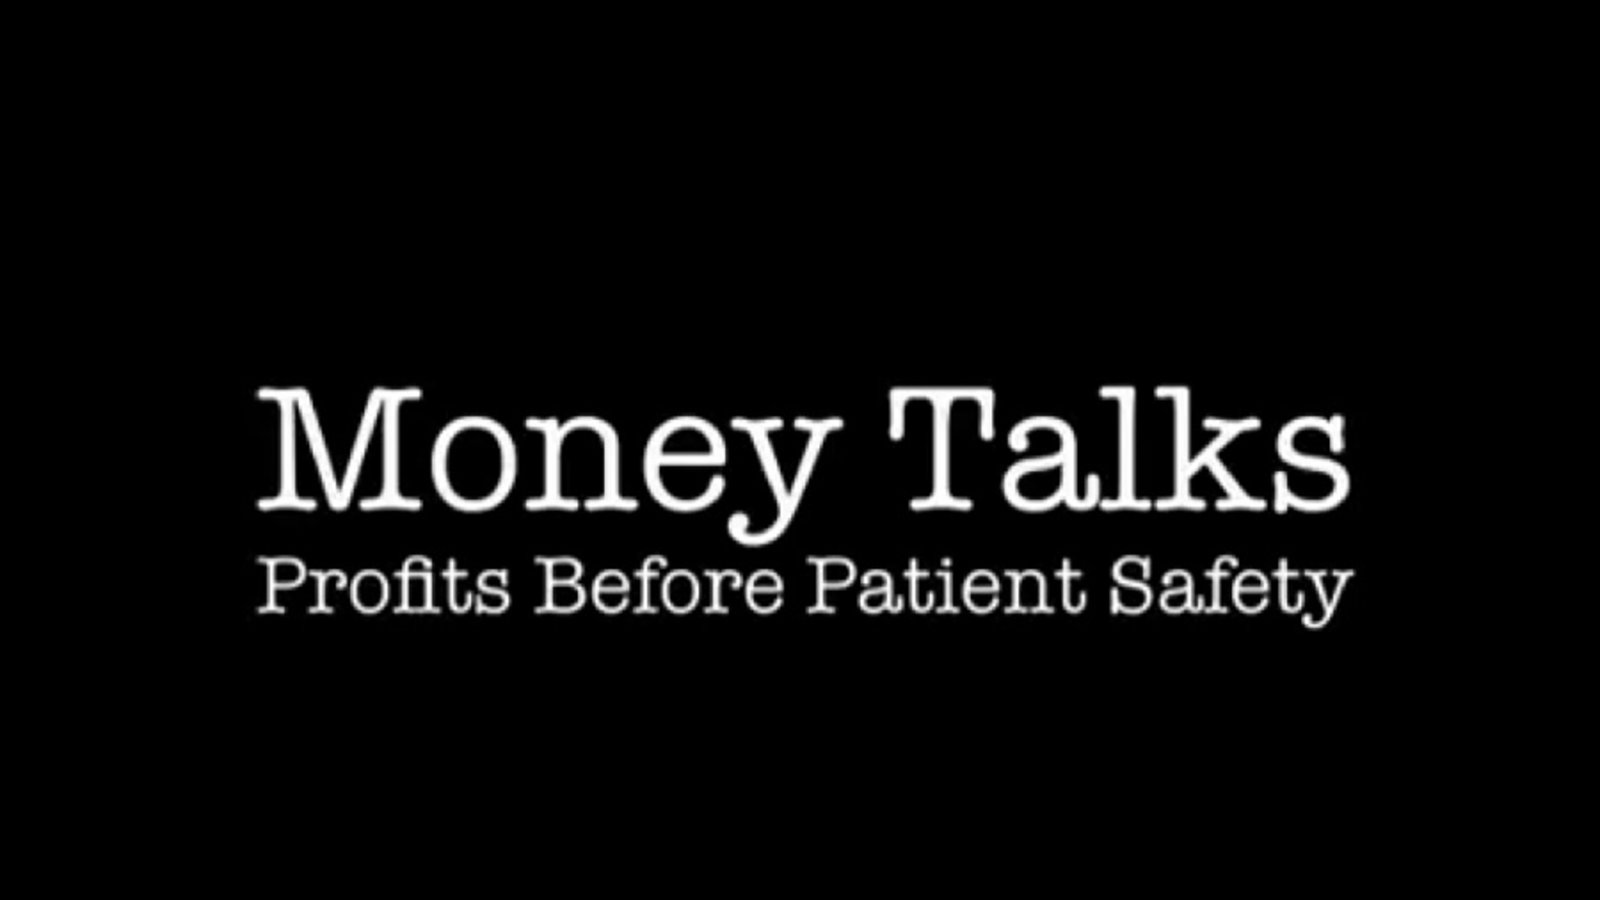 Money Talks: Profits Over Patient Safety - Exposing Dishonest Drug Industry Practices